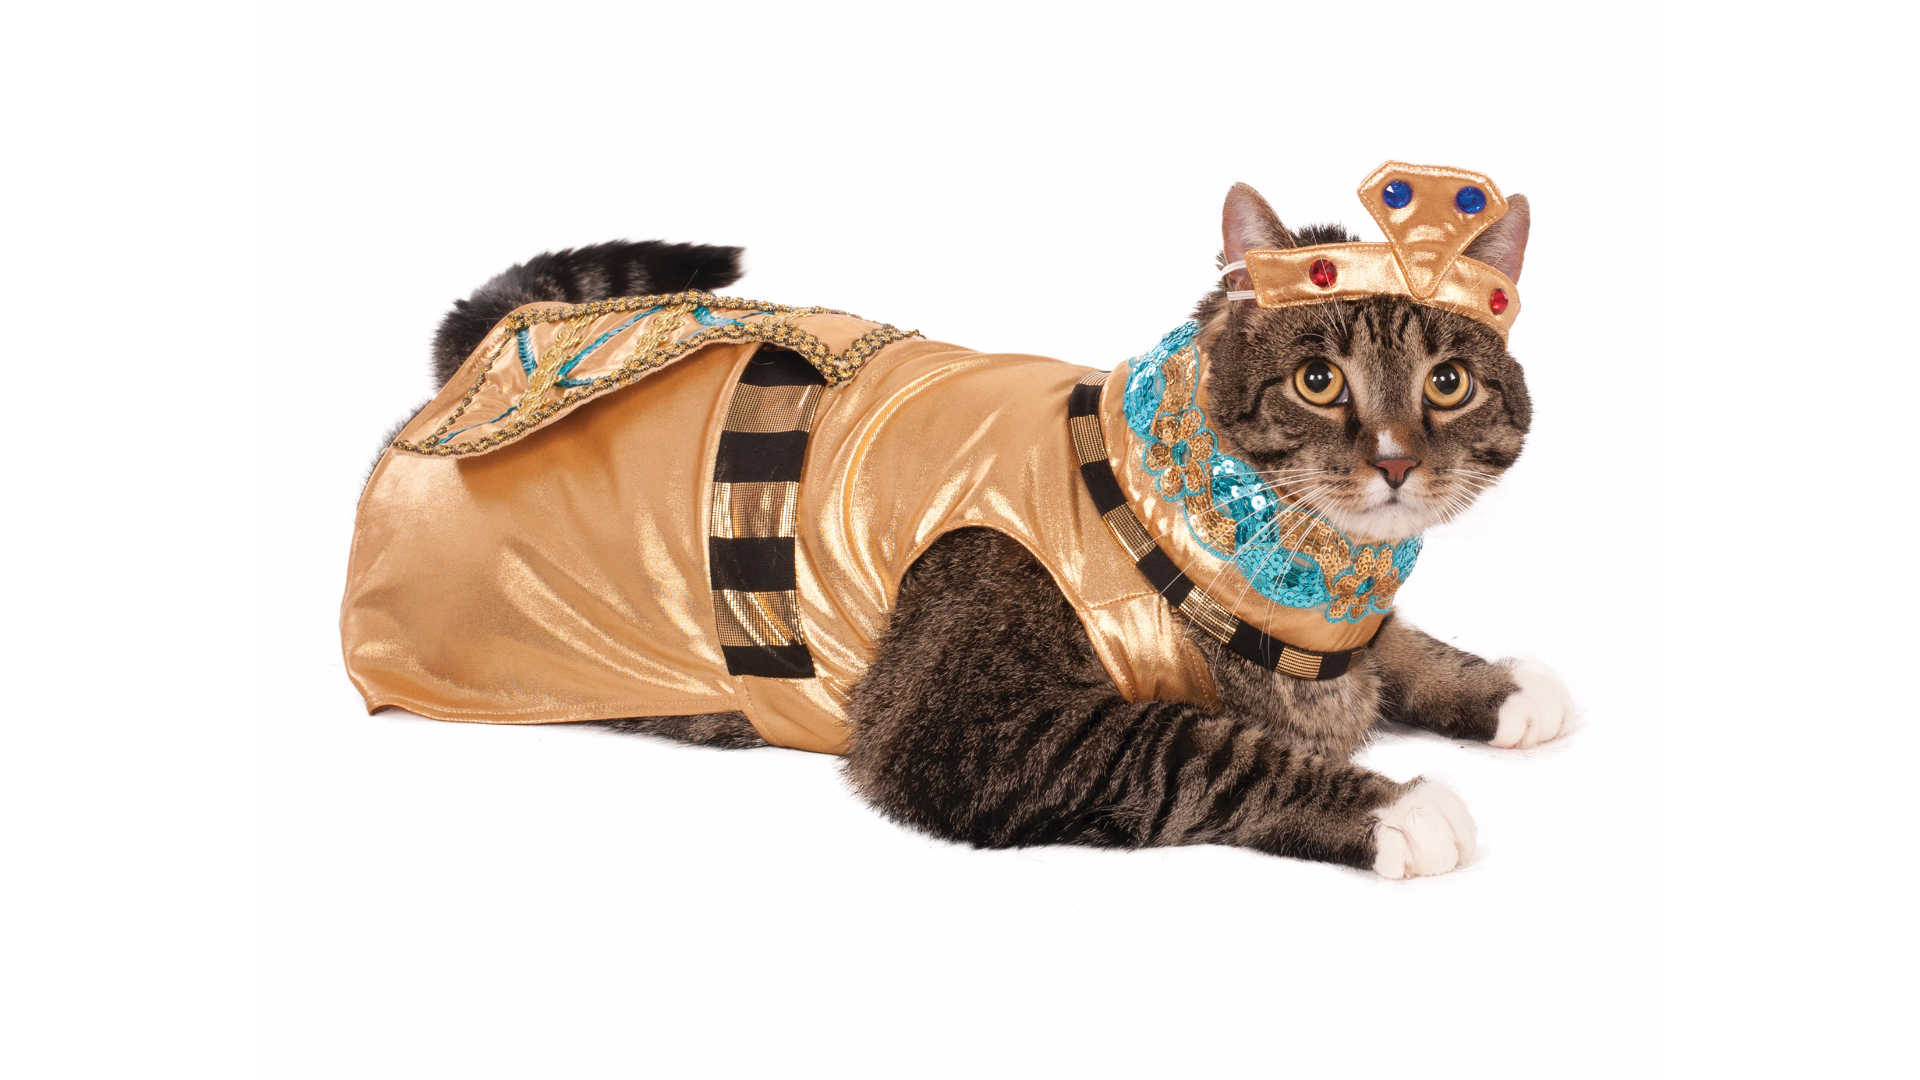 This costume fit for kitty royalty